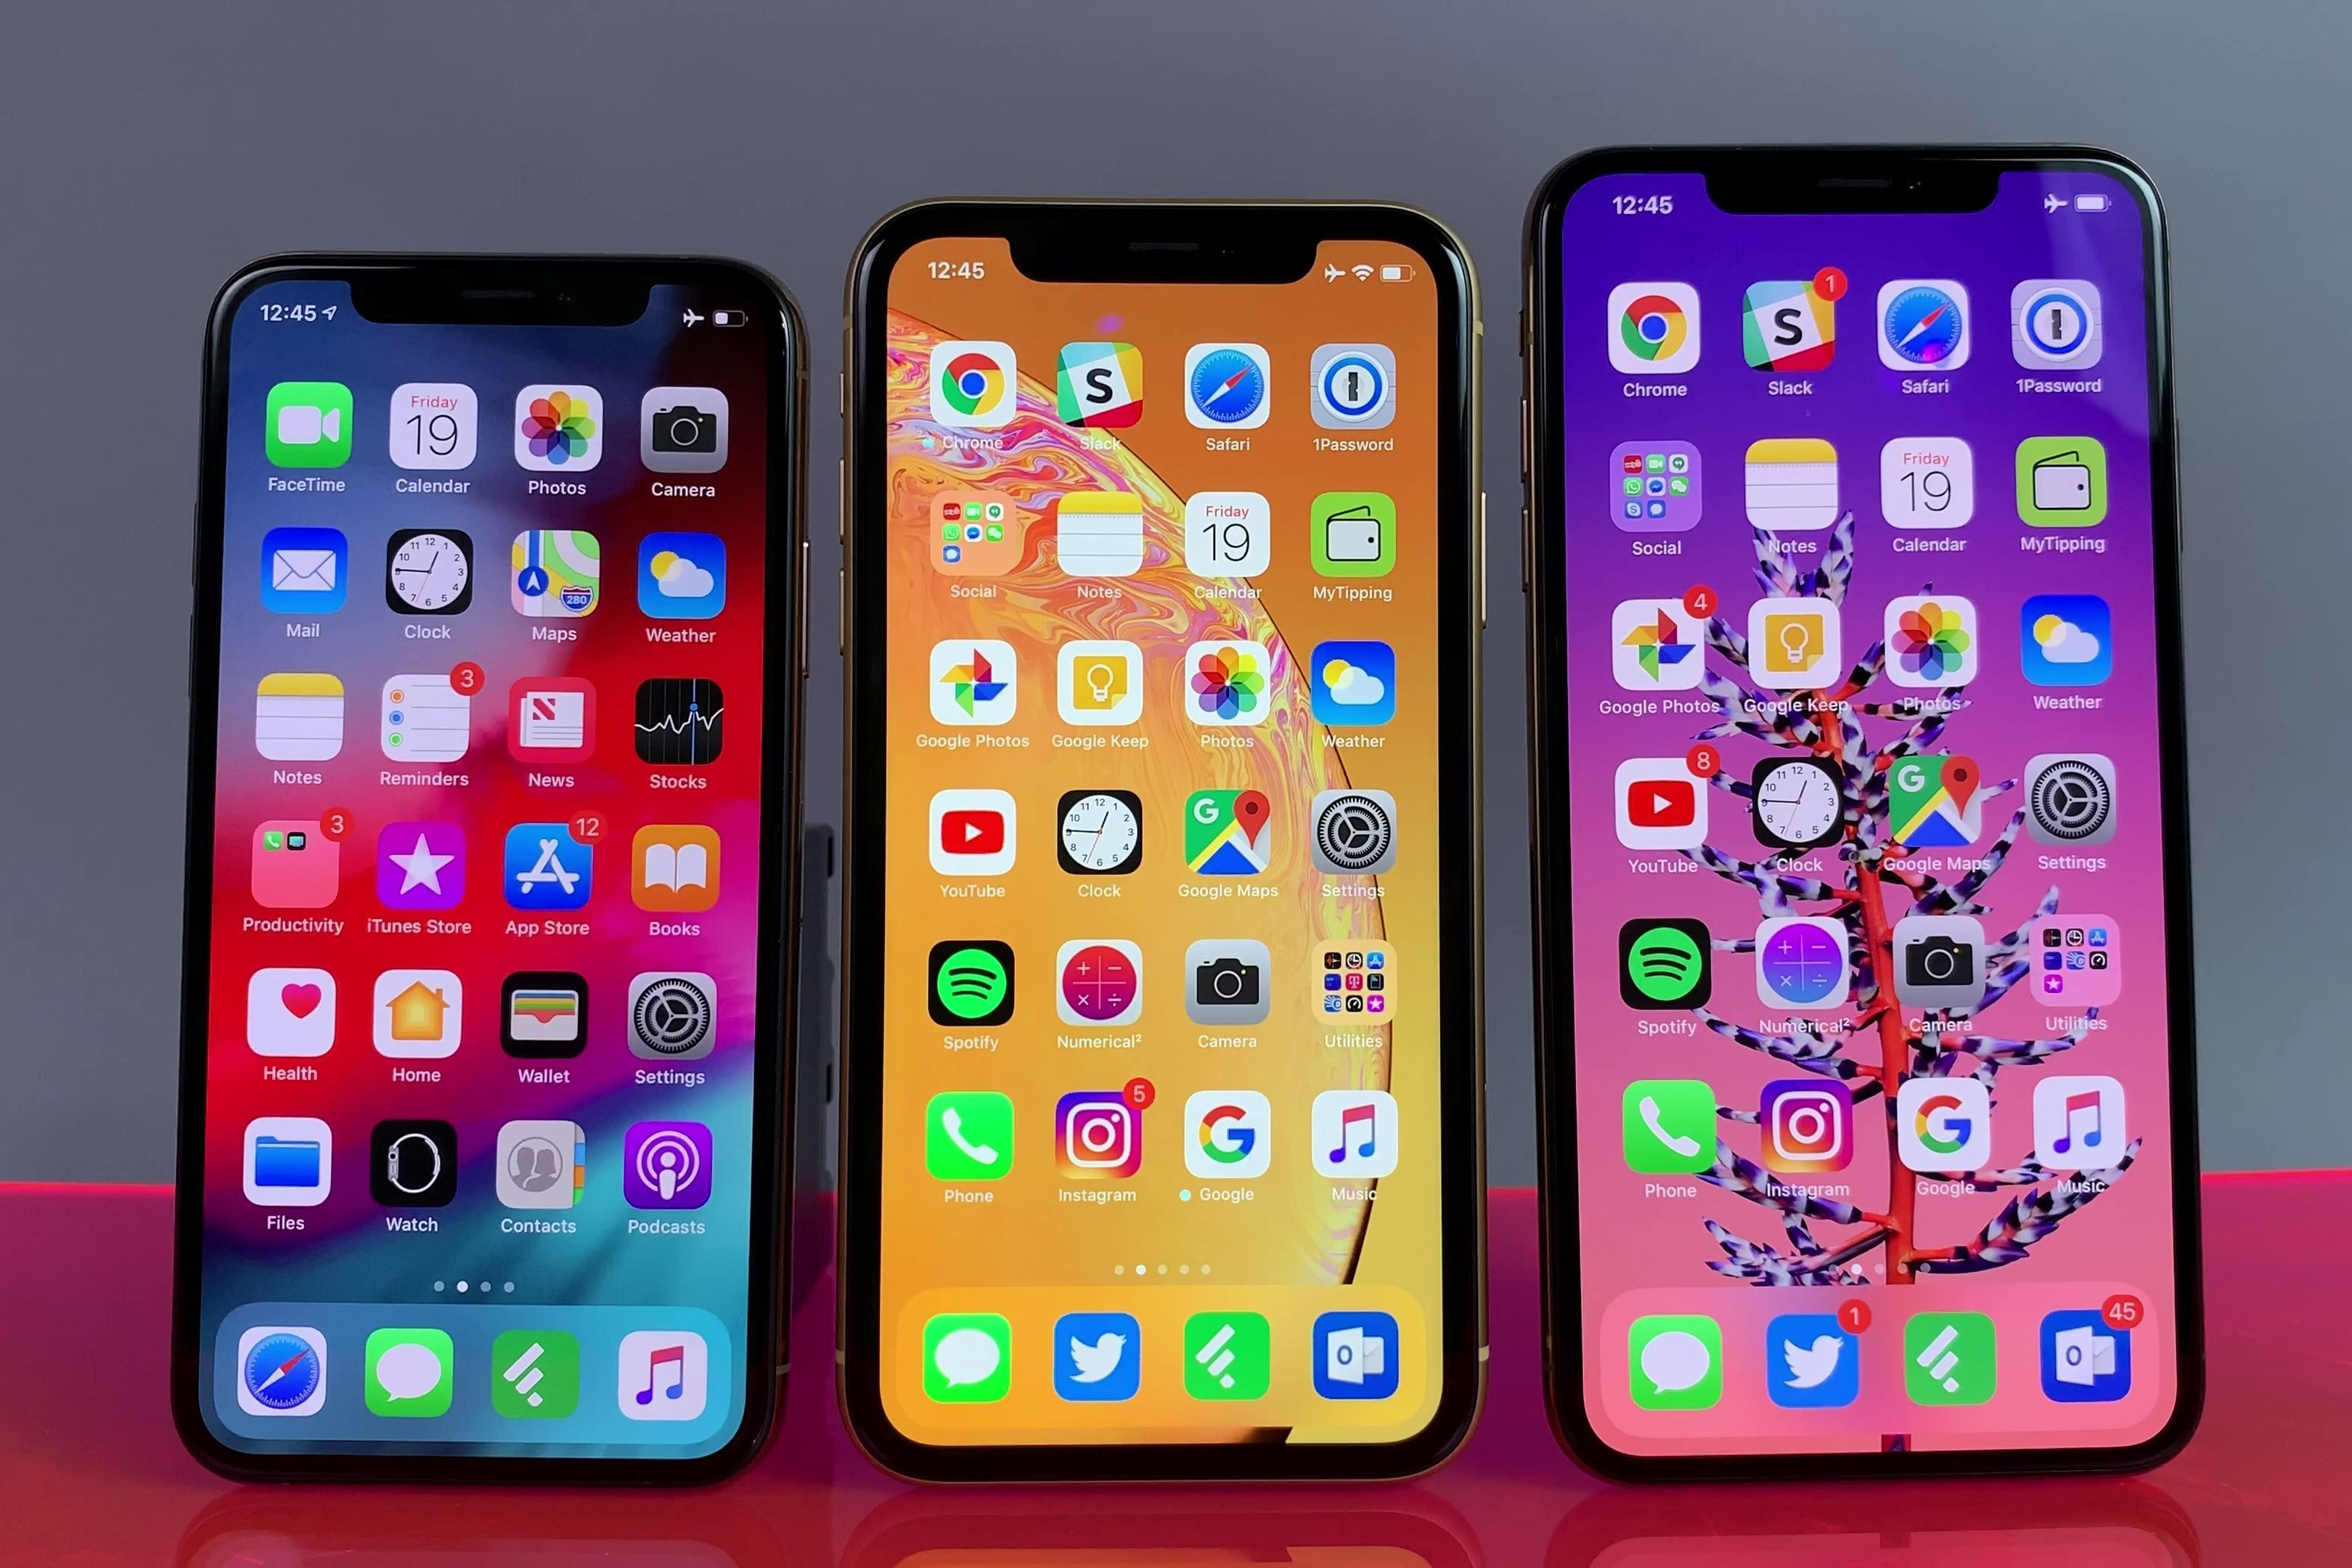 Iphone Xr In 2020 Iphone Whats On My Iphone Iphone App Layout